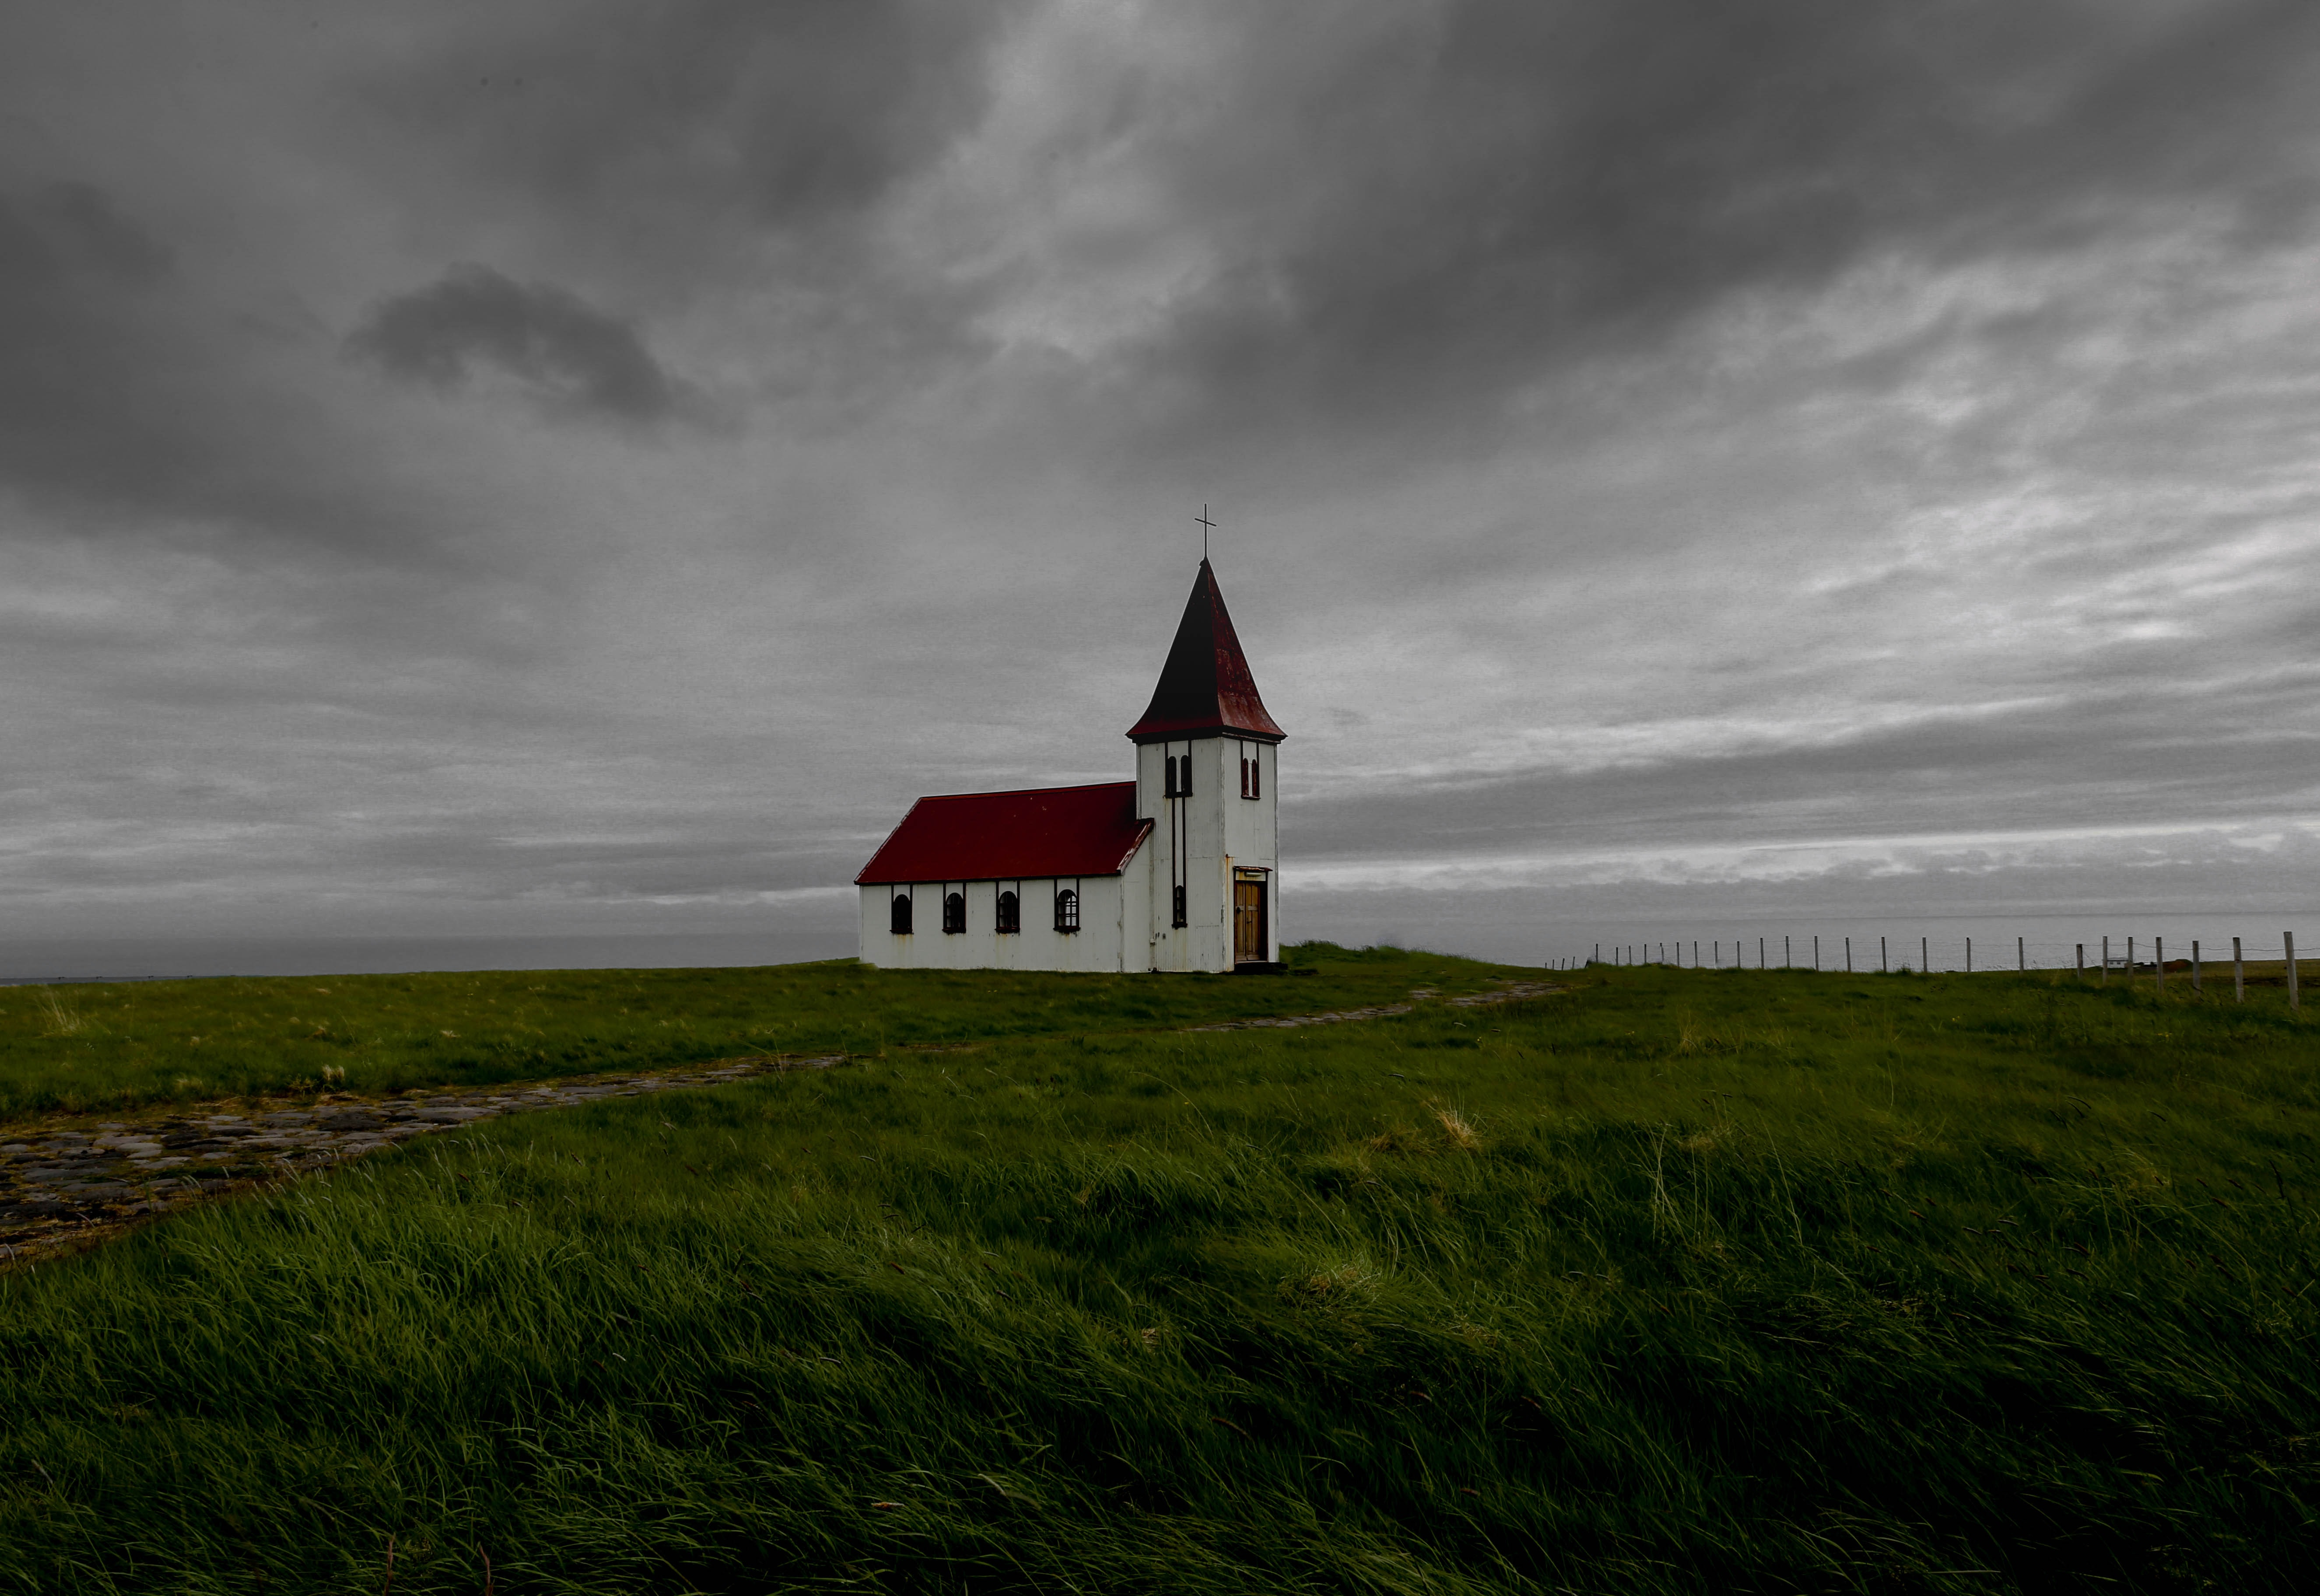 A white church building in the middle of farmland near the ocean, covered by gray clouds.